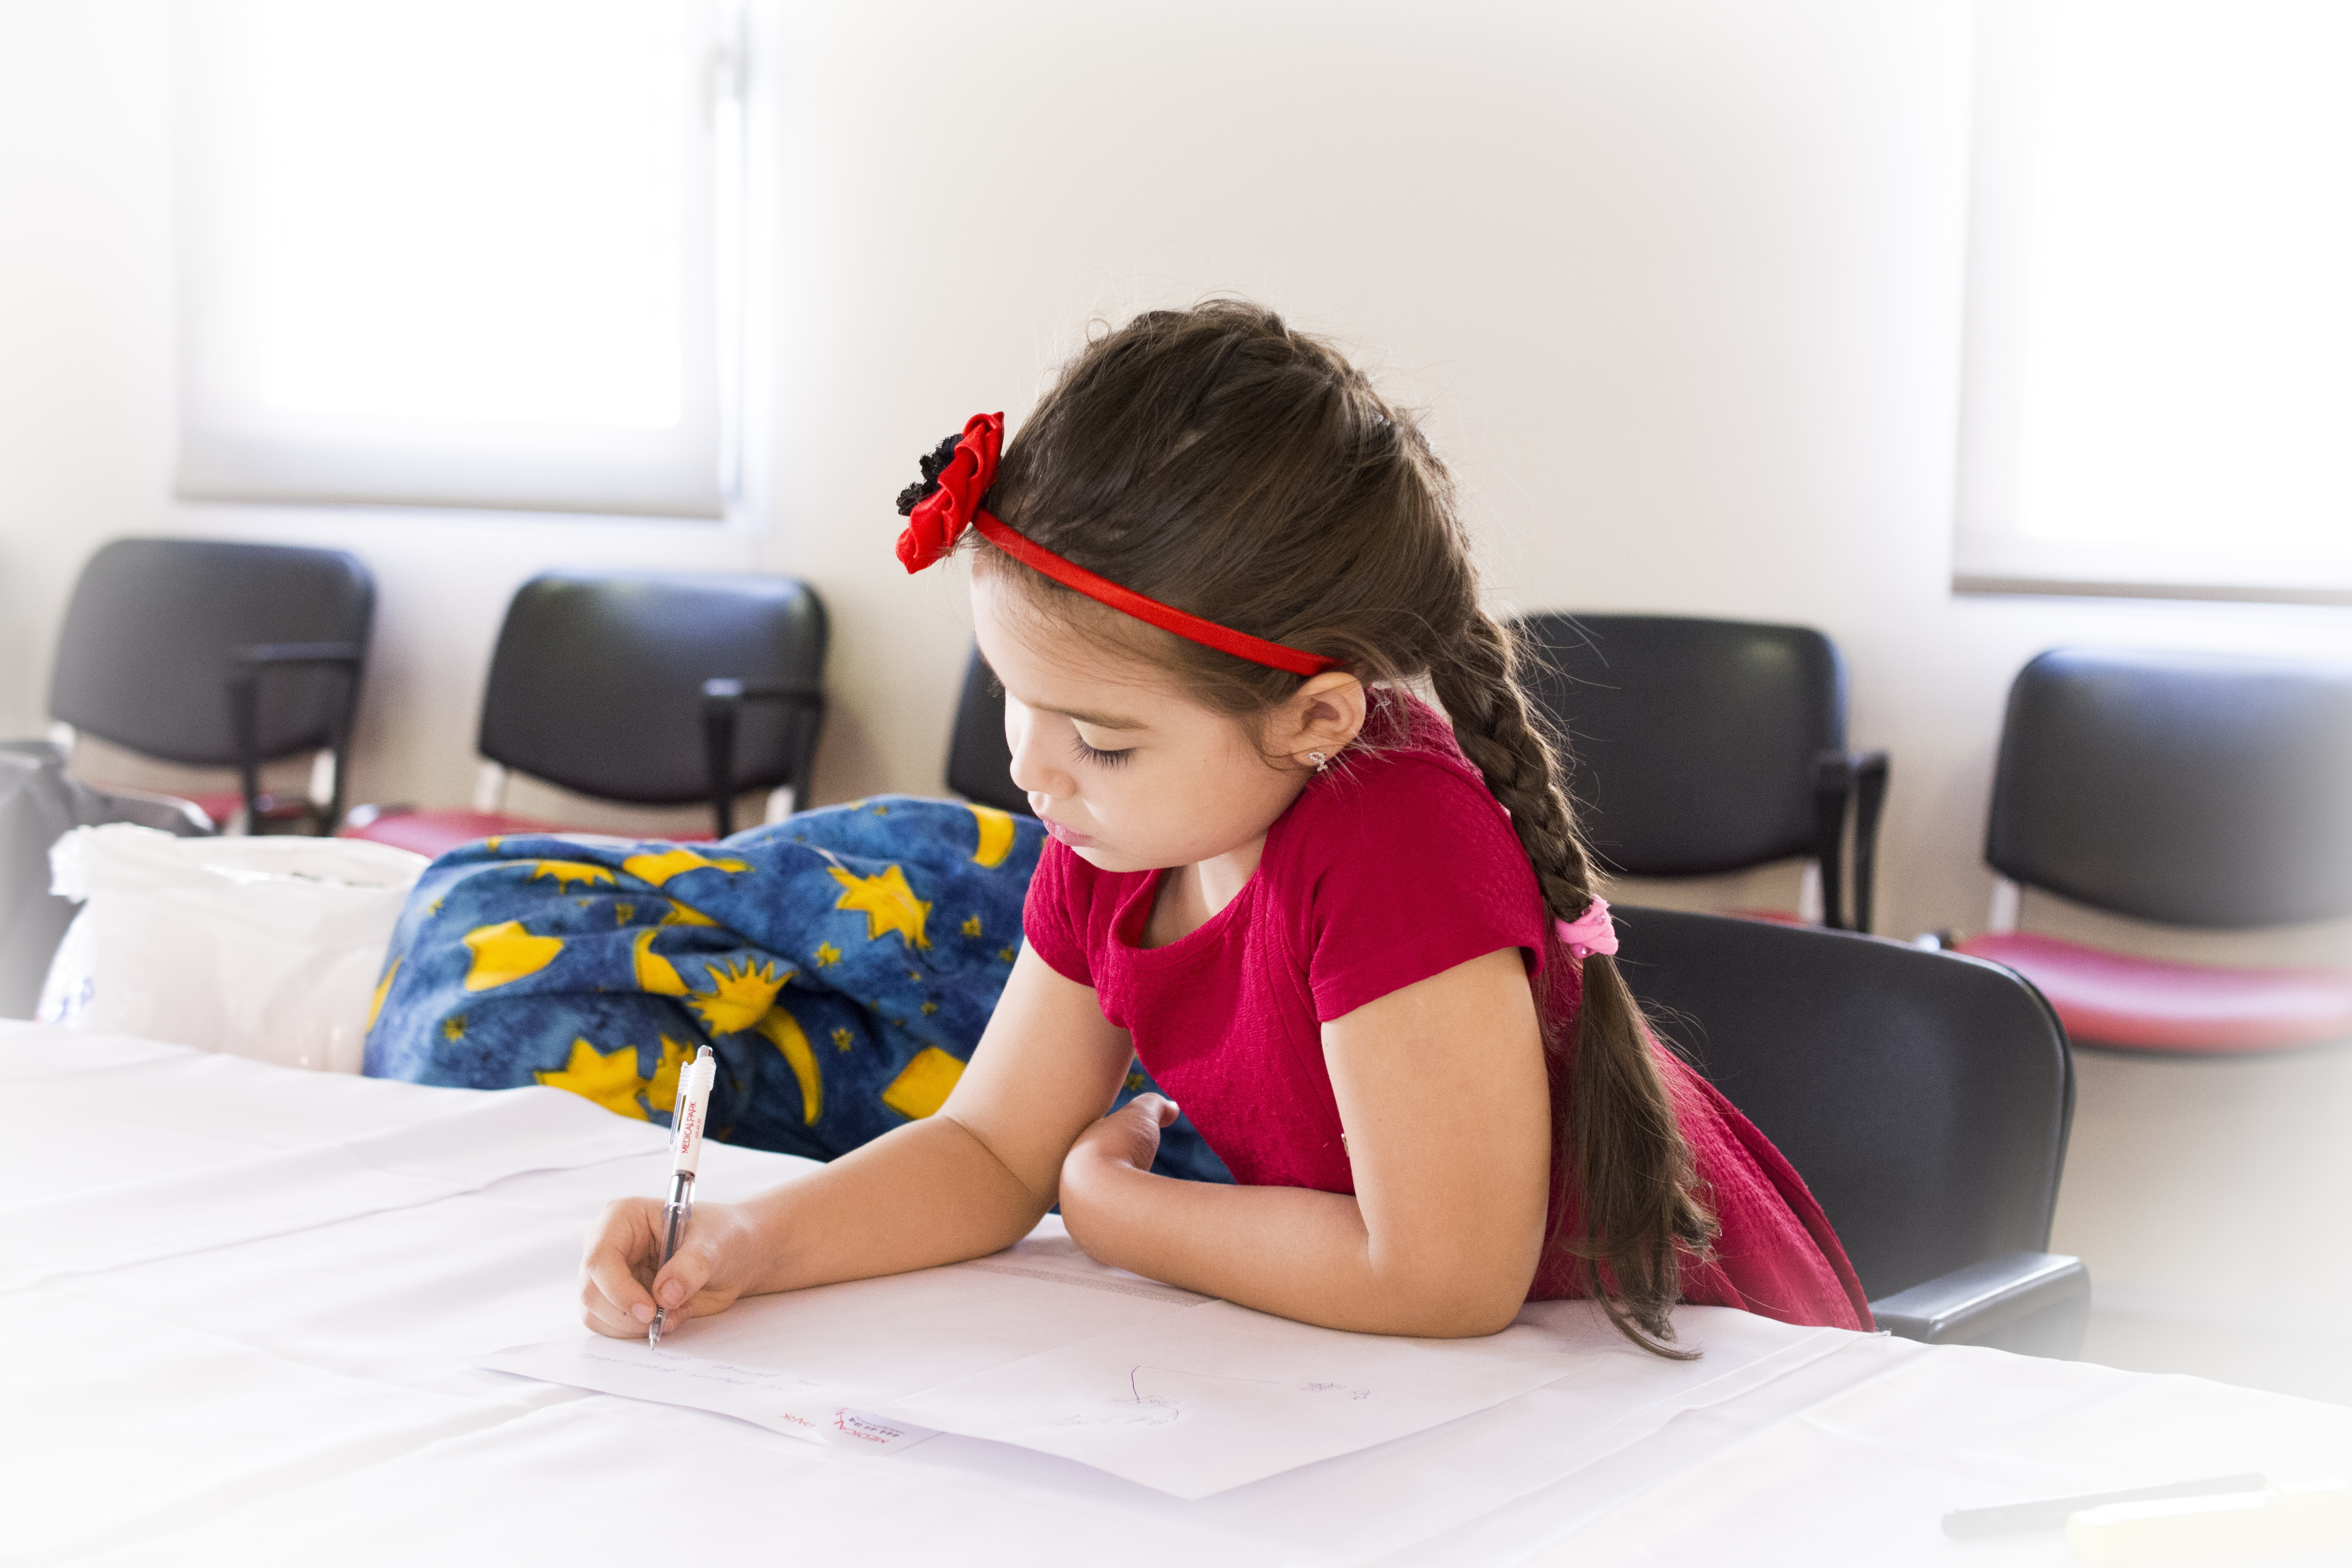 girl in red short sleeve dress and flower headband holding pen and writing on paper on